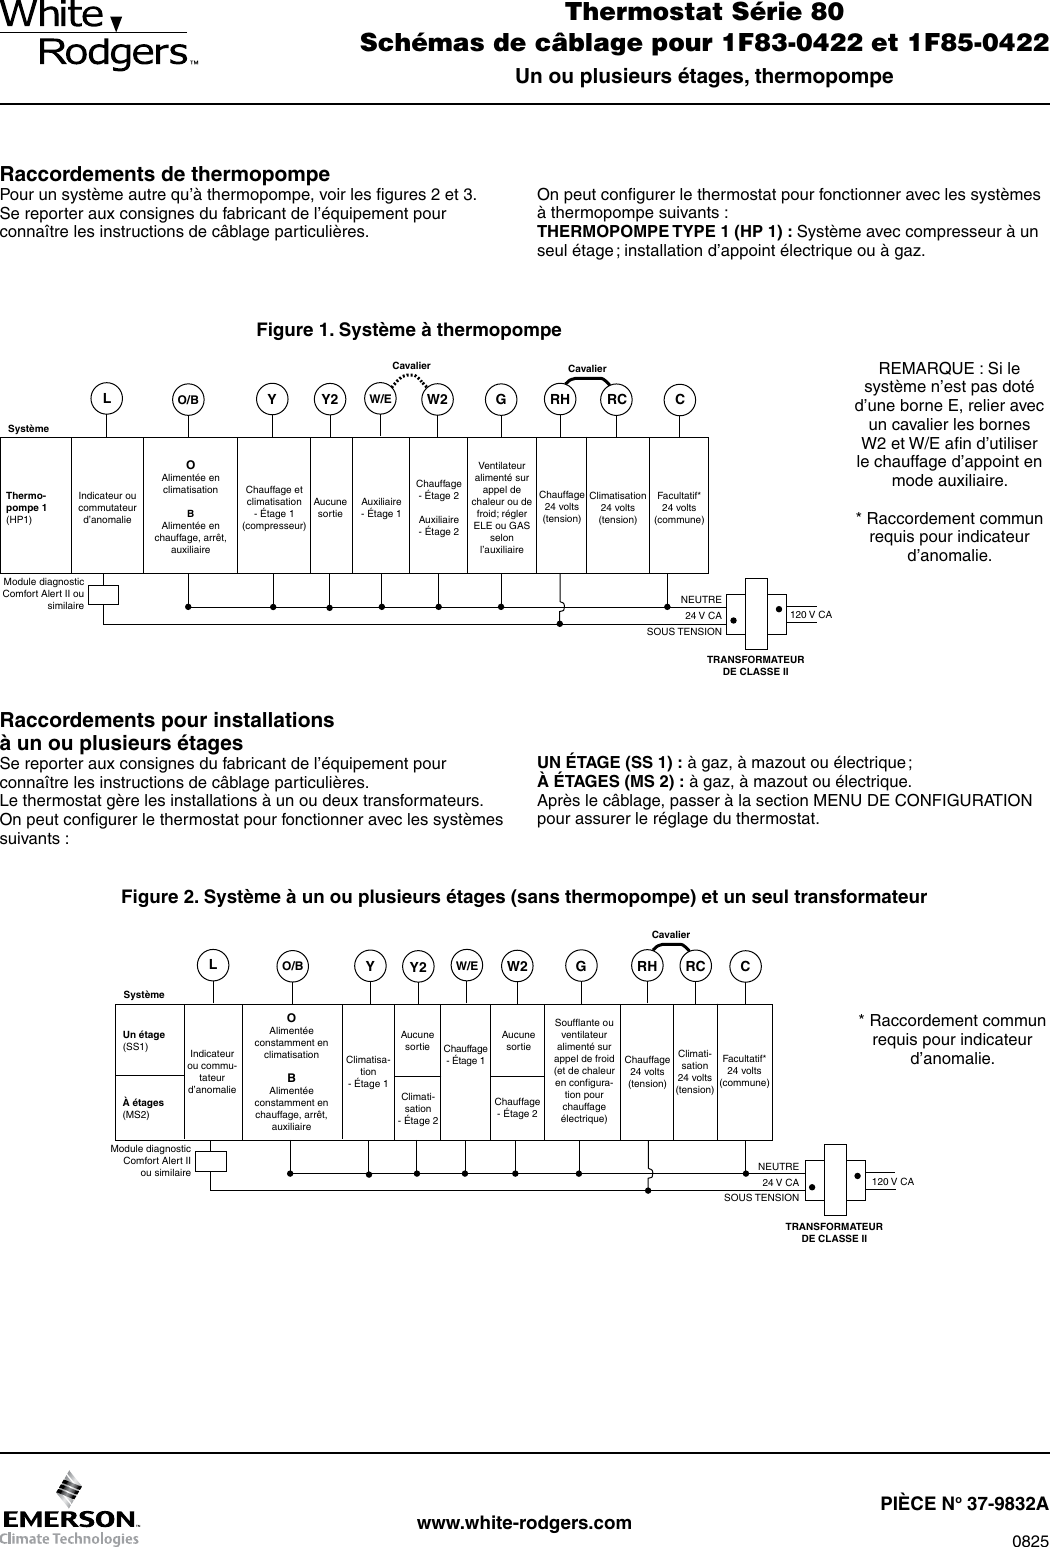 White Rodgers 1f85 0422 Emerson Blue 4 Programmable Thermostat Dico Wiring Diagram Page 3 Of